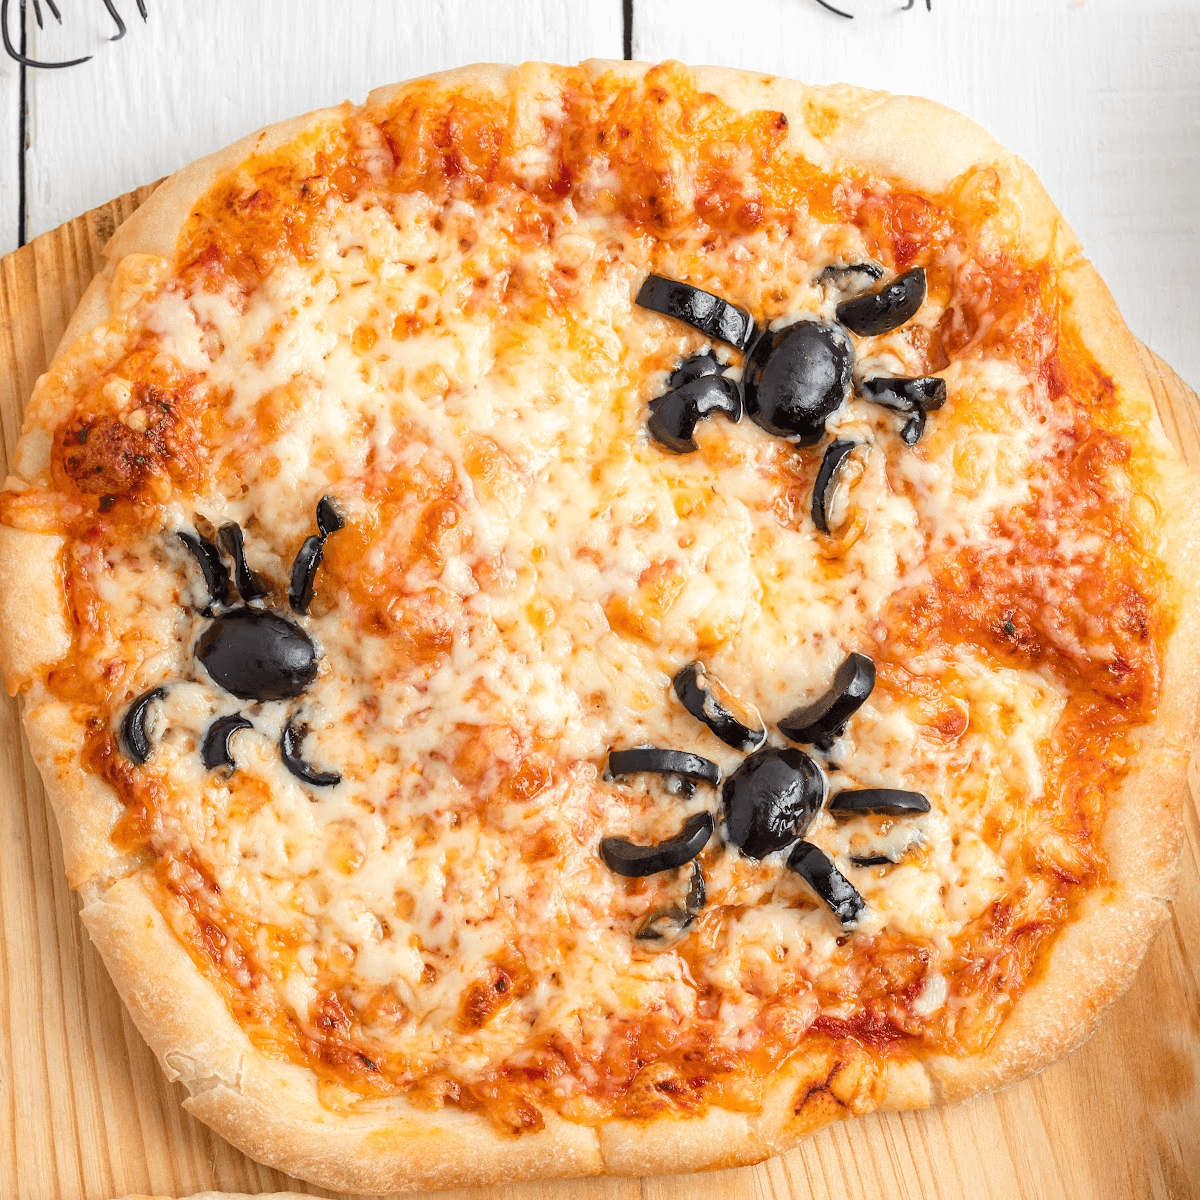 Olive spiders on a mini-pizza for some Halloween fun.